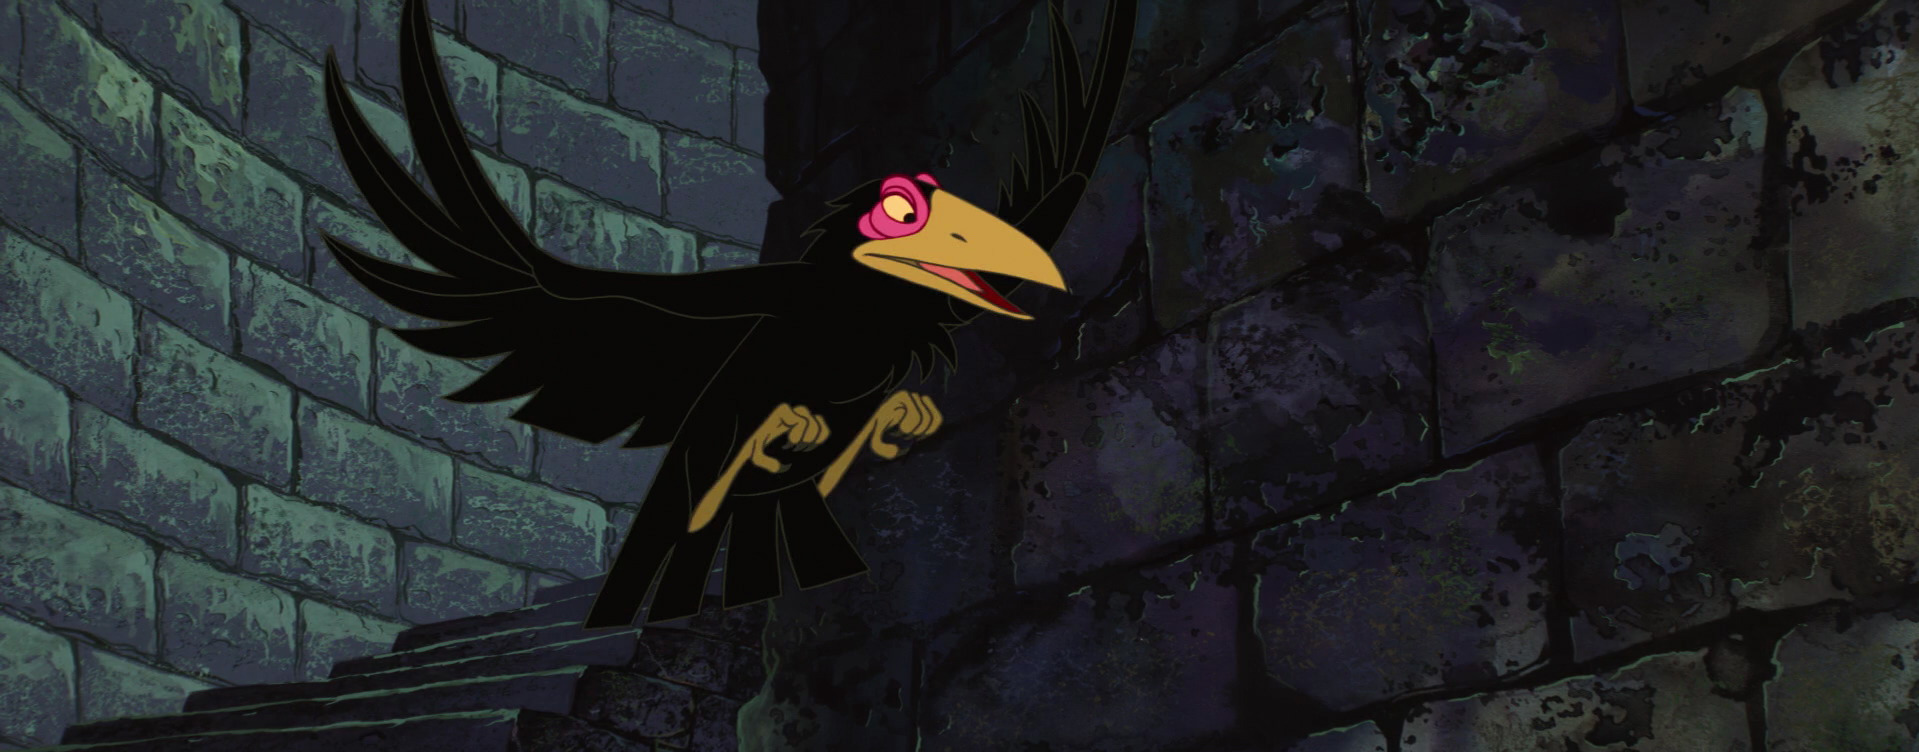 Sleeping Beauty / Characters - TV Tropes